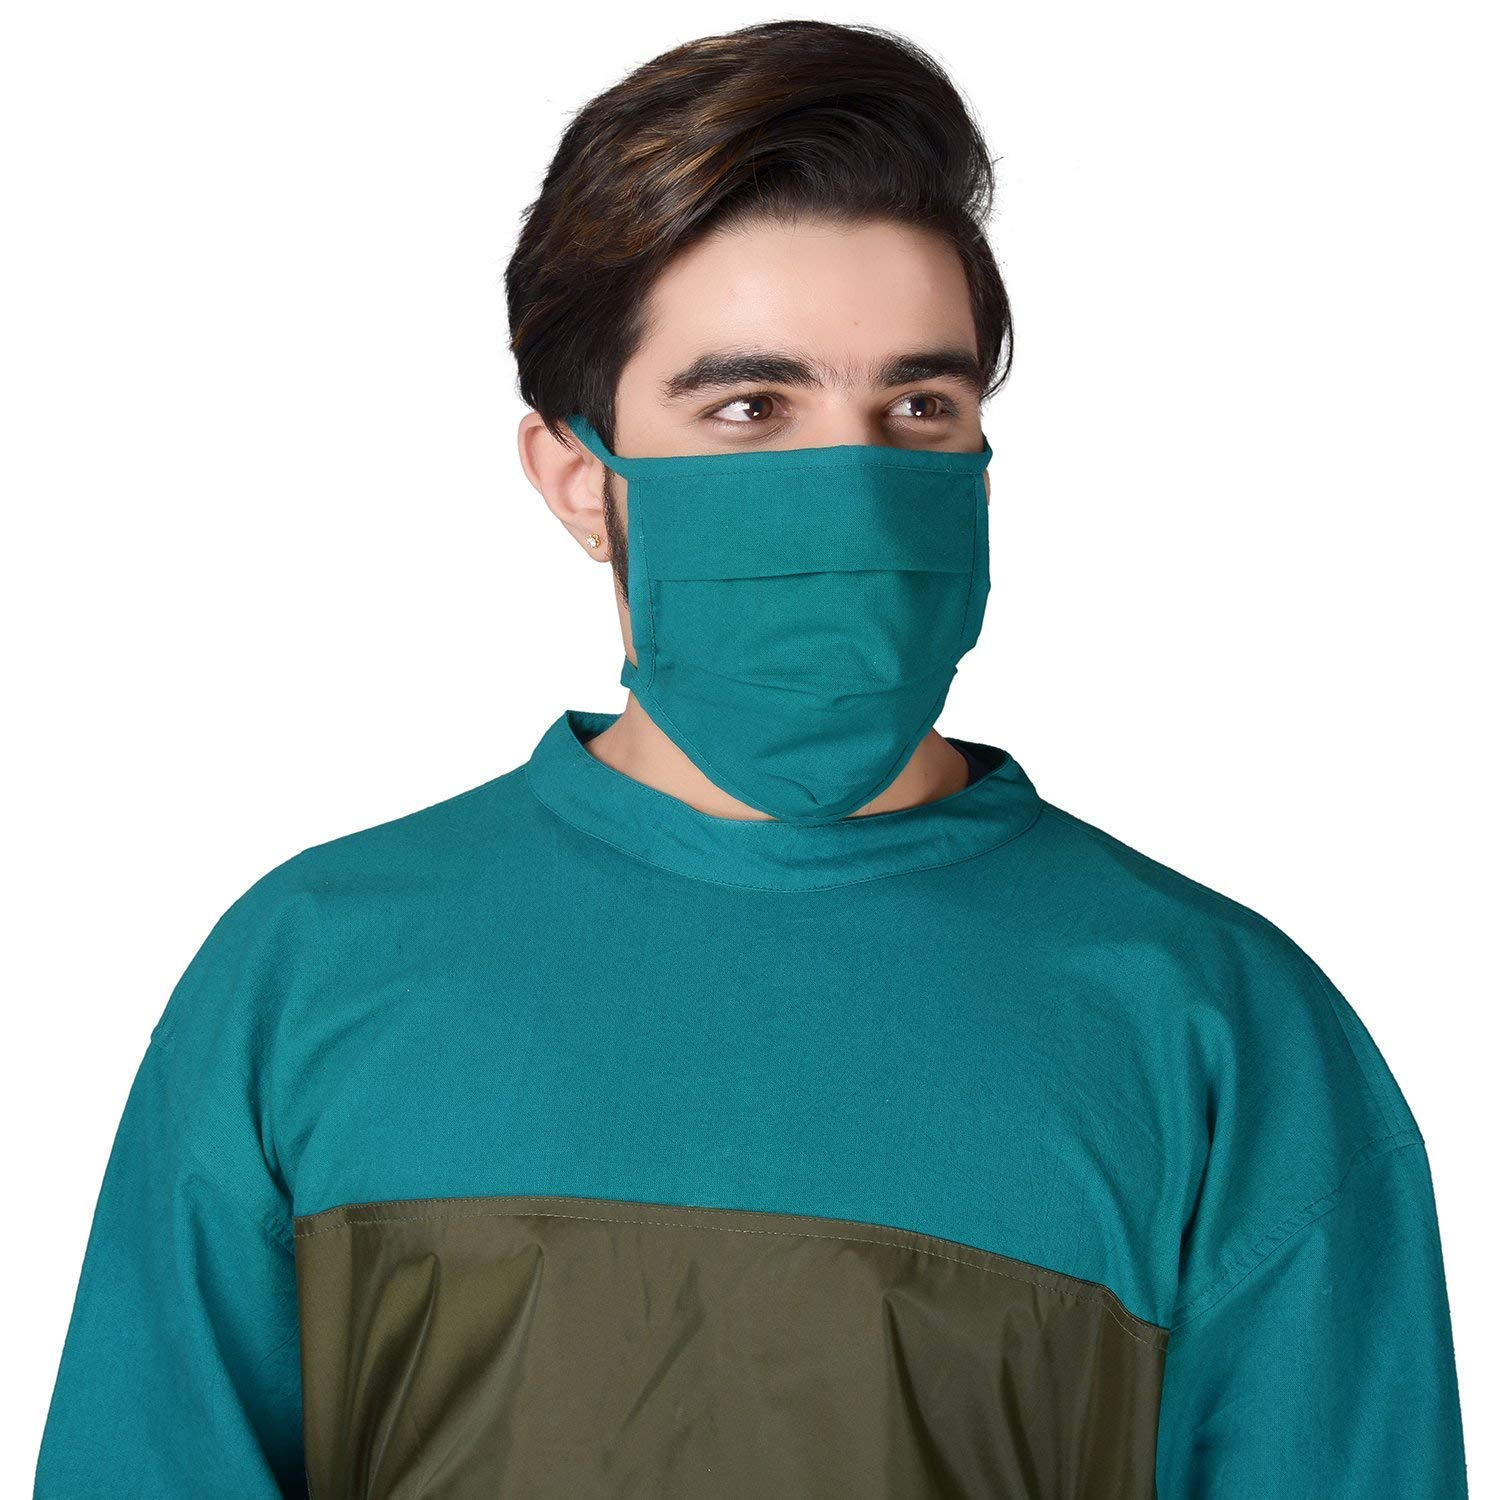 Saraf Reusable Anti Pollution Face Mask Cloth Tie 100 Protection Washable Long Life Use Green Color Amazon In Clothing Accessories